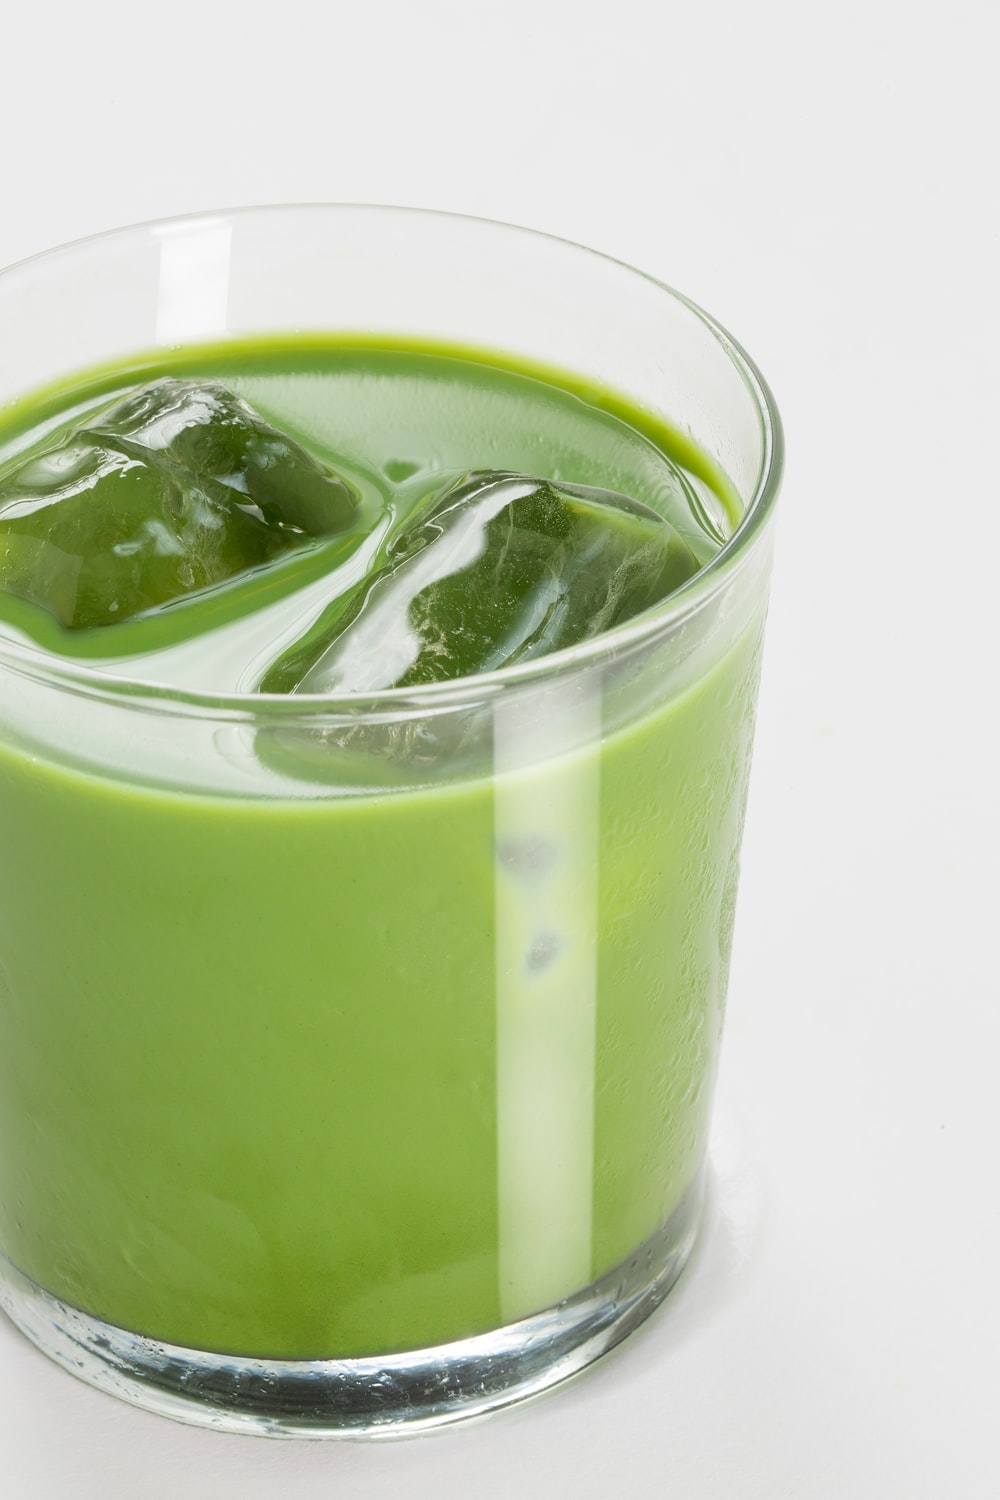 clear drinking glass with green liquid